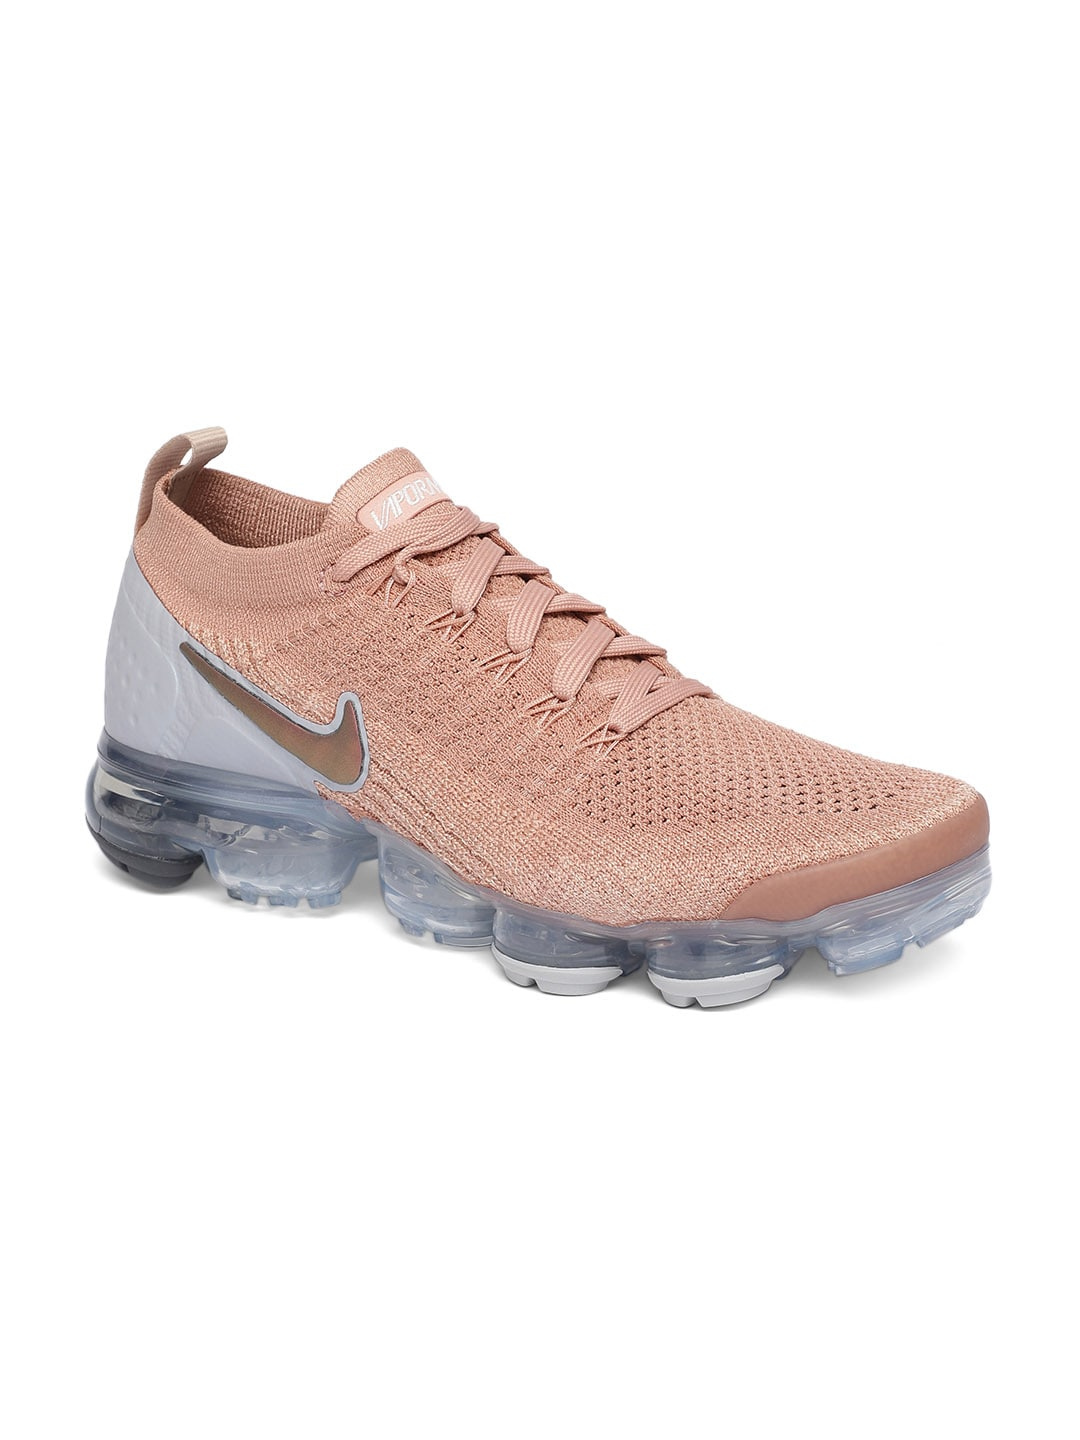 e96ef3352ce4a Nike Air Max - Buy Nike Air Max Shoes